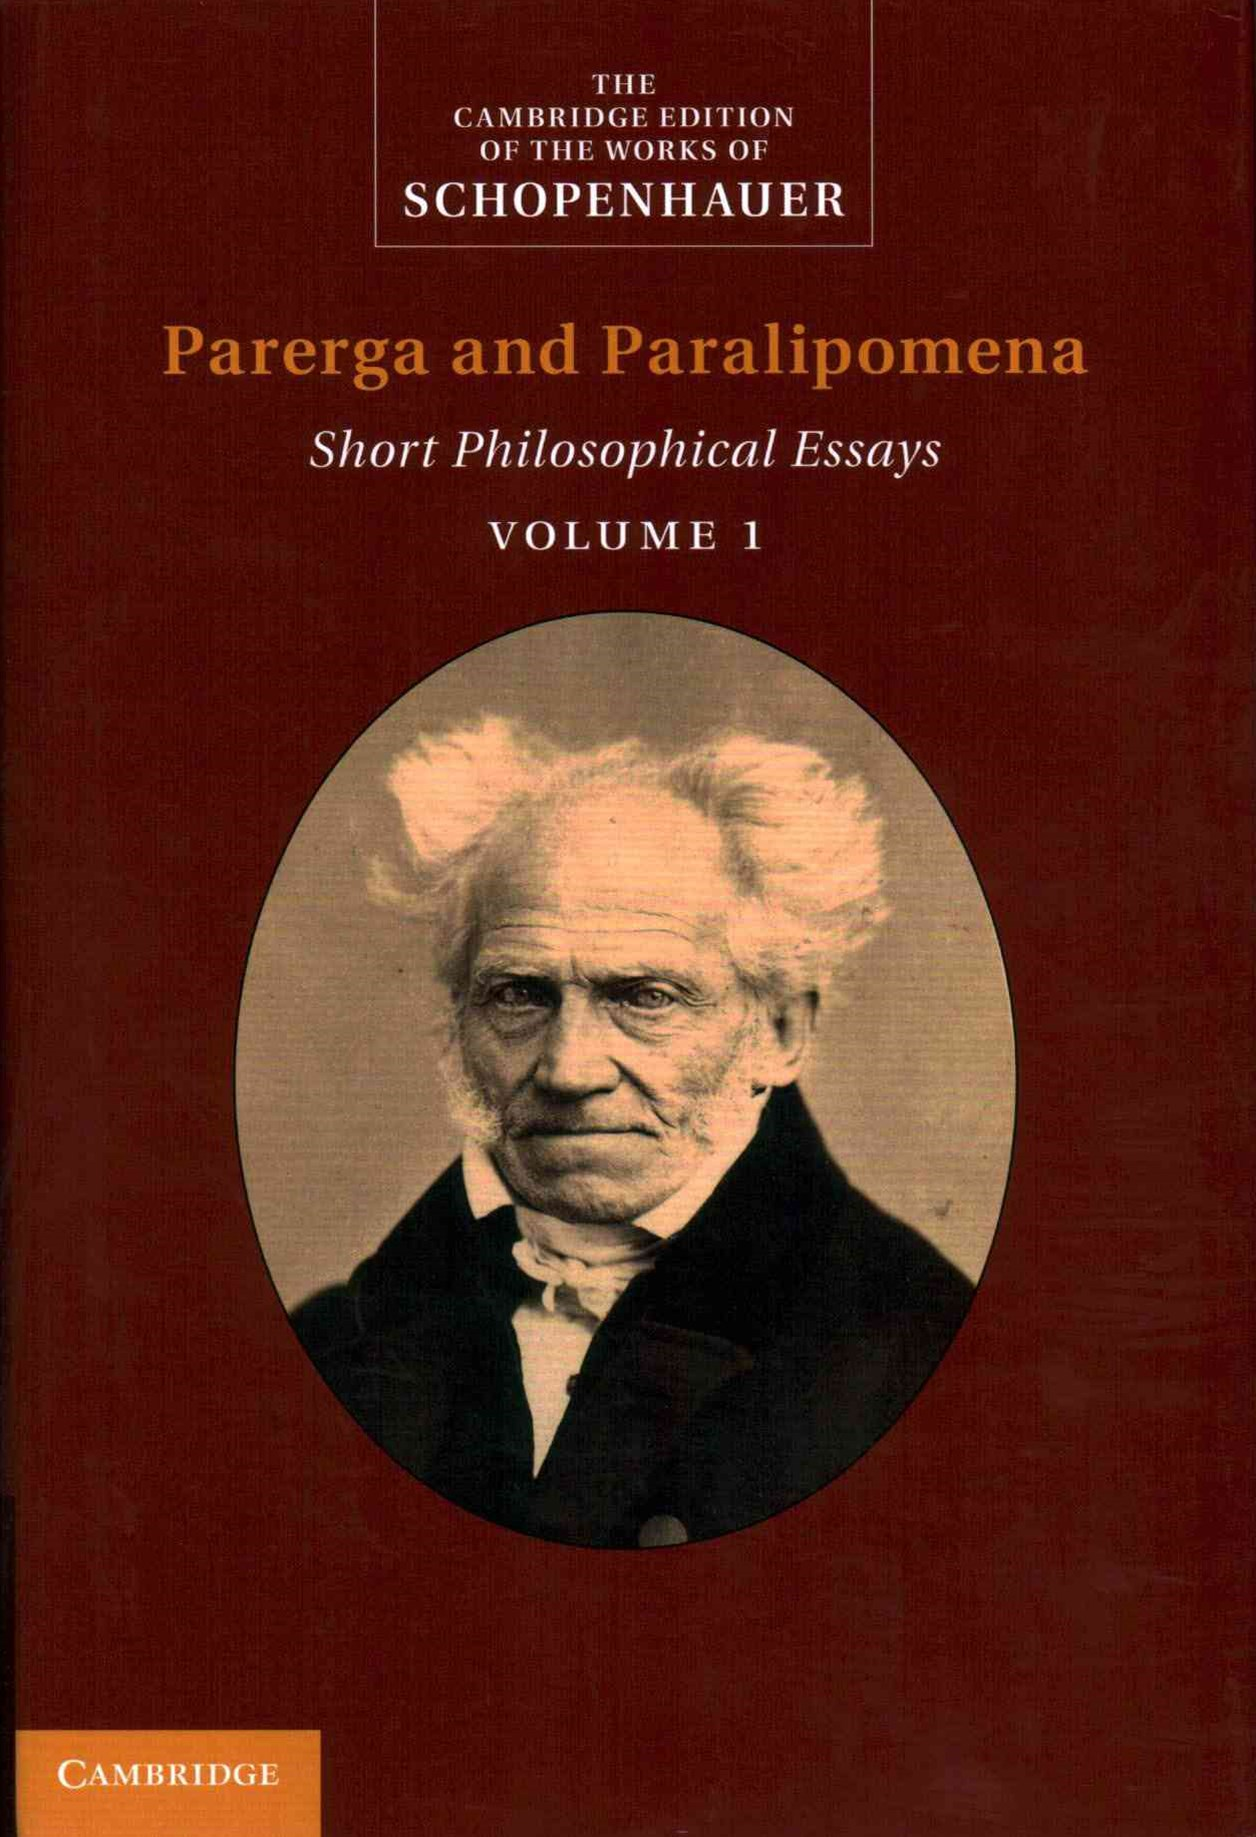 Schopenhauer: Parerga and Paralipomena: Volume 1